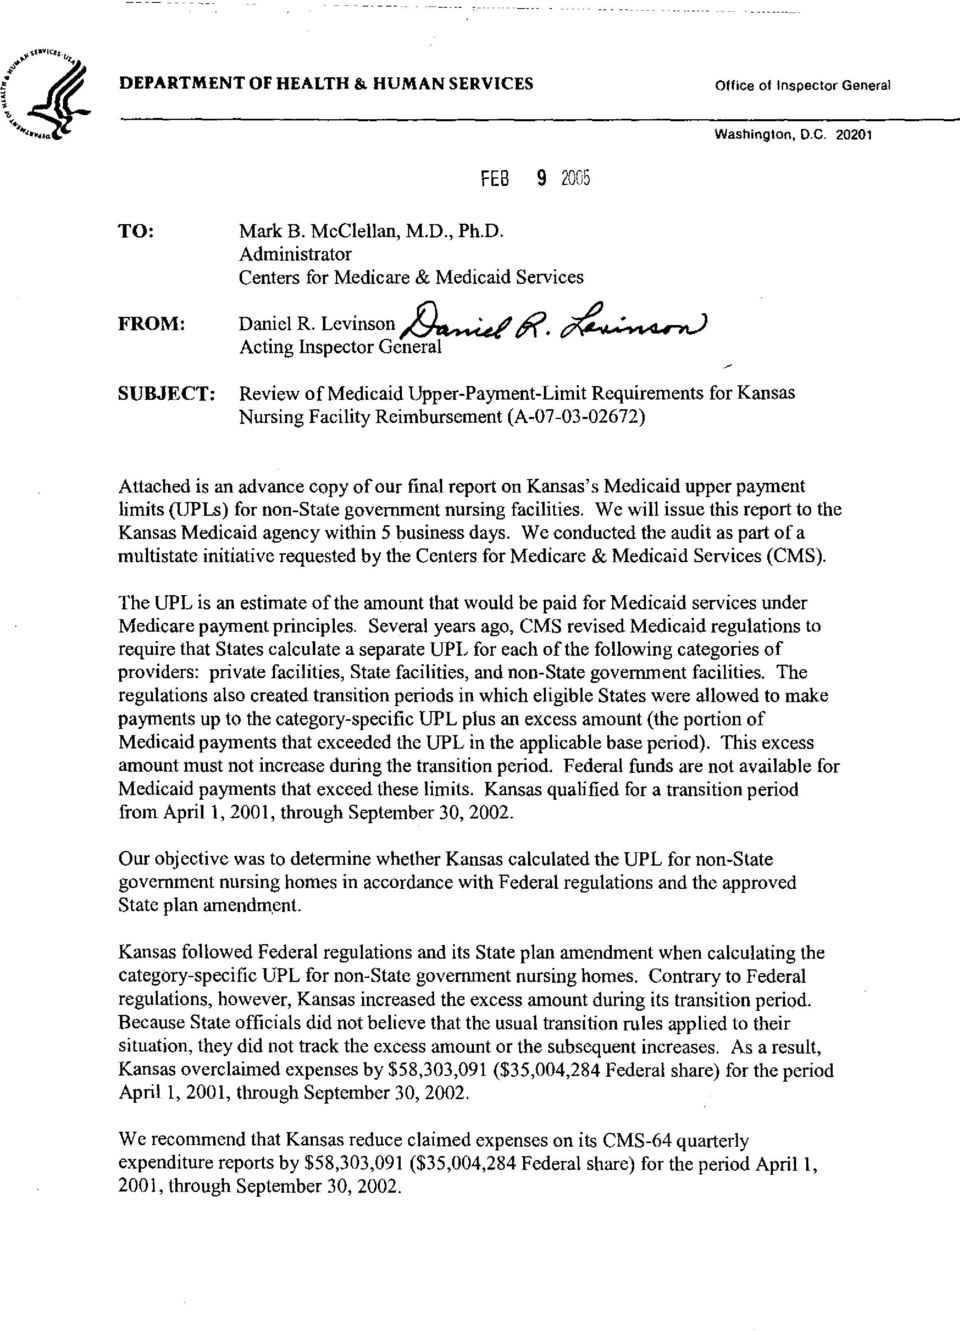 Acting Inspector General SUBJECT: Review of Medicaid Upper-Payment-Limit Requirements for Kansas Nursing Facility Reimbursement (A-07-03-02672), Attached is an advance copy of our final report on